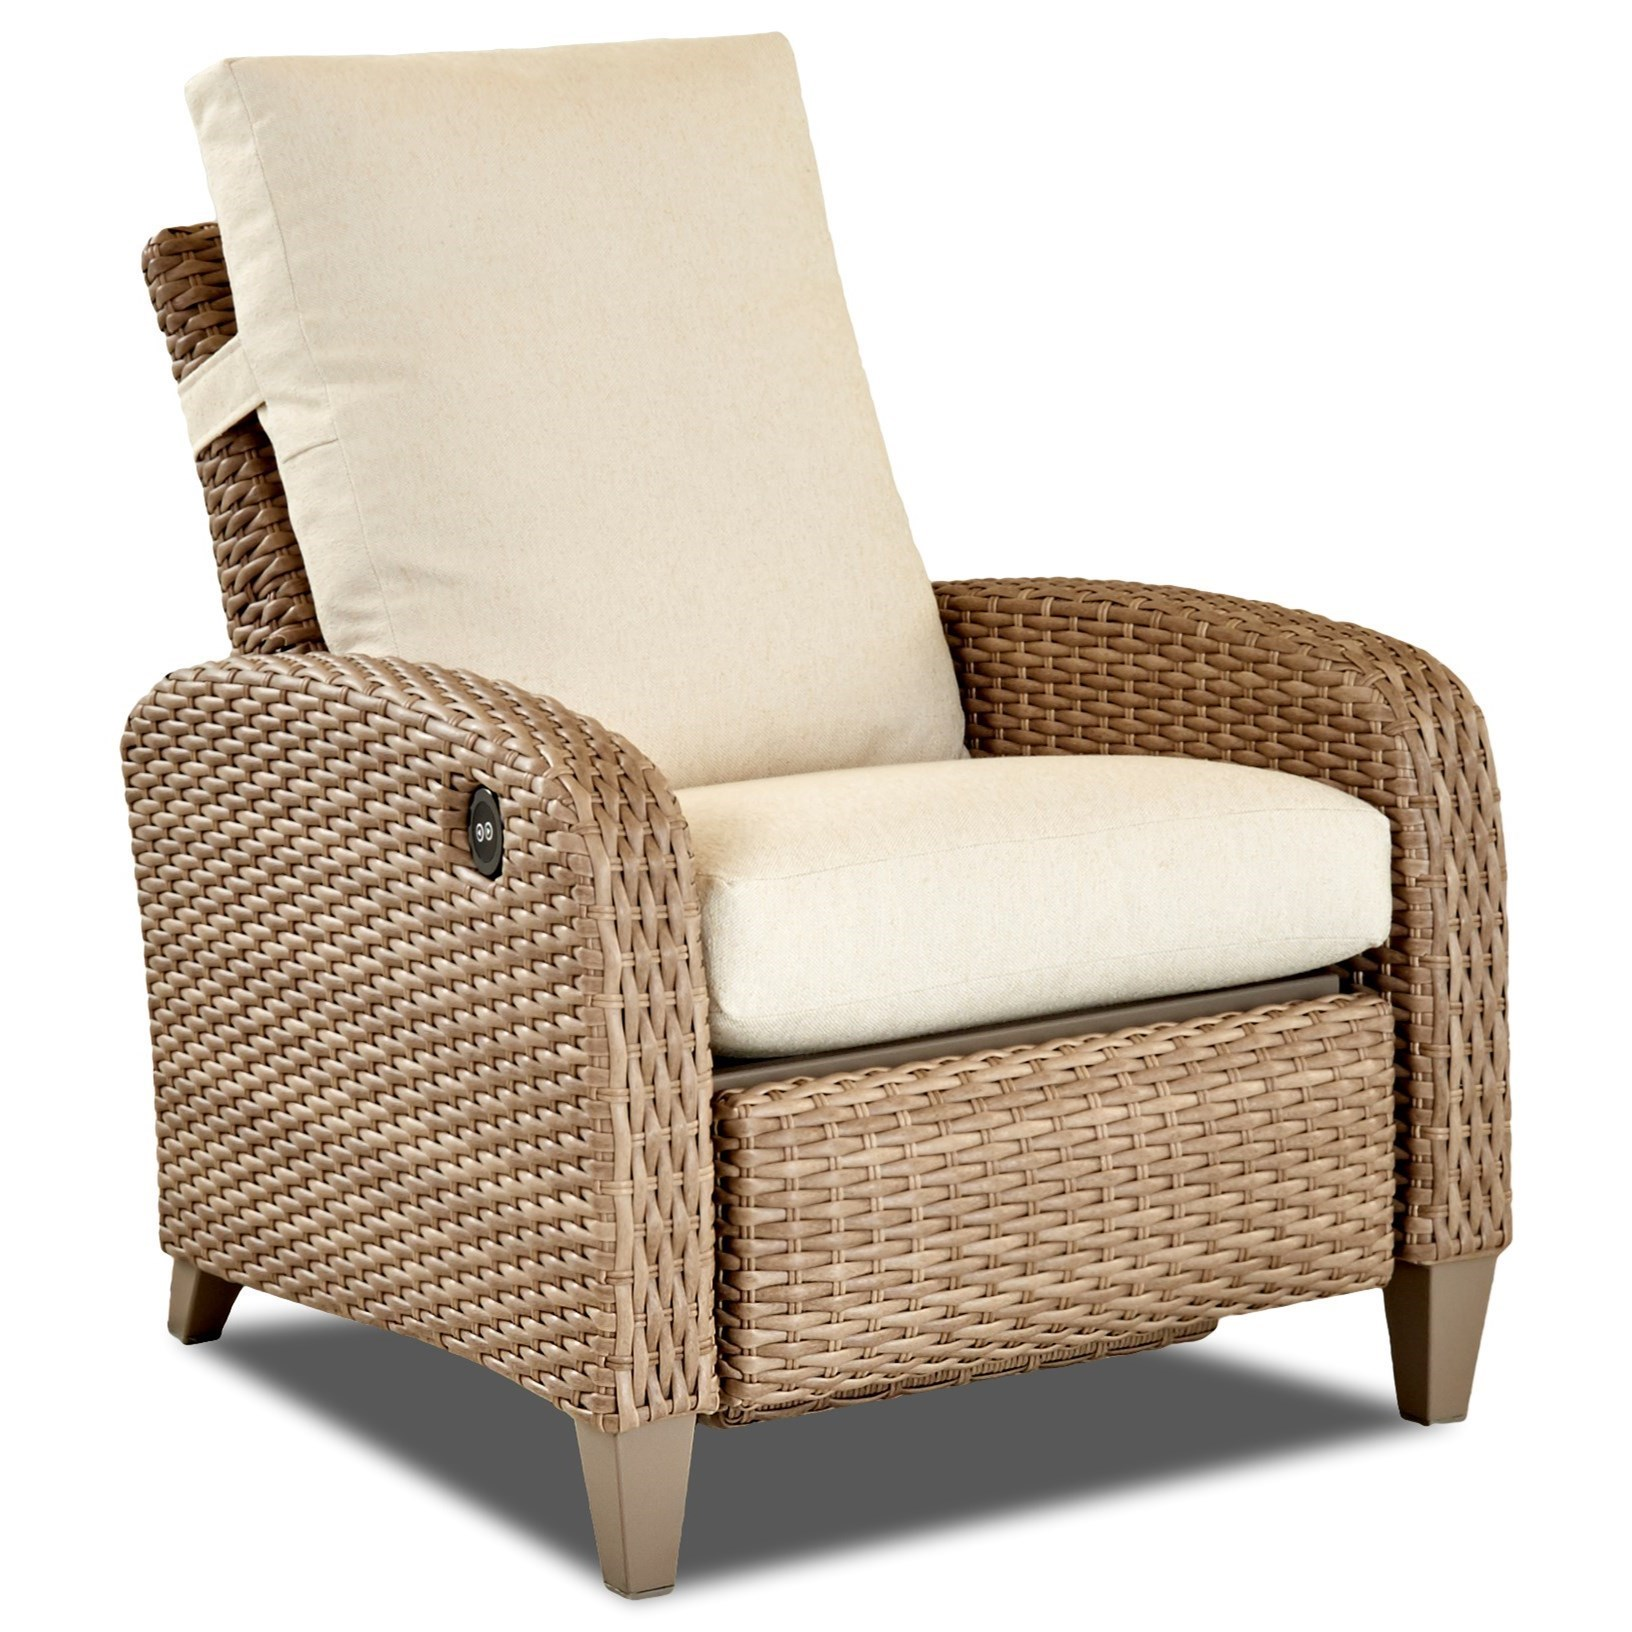 wicker recliner chair leather work klaussner outdoor tidepointe w5611 phrdr power motion high tidepointepower leg w drainable cushion